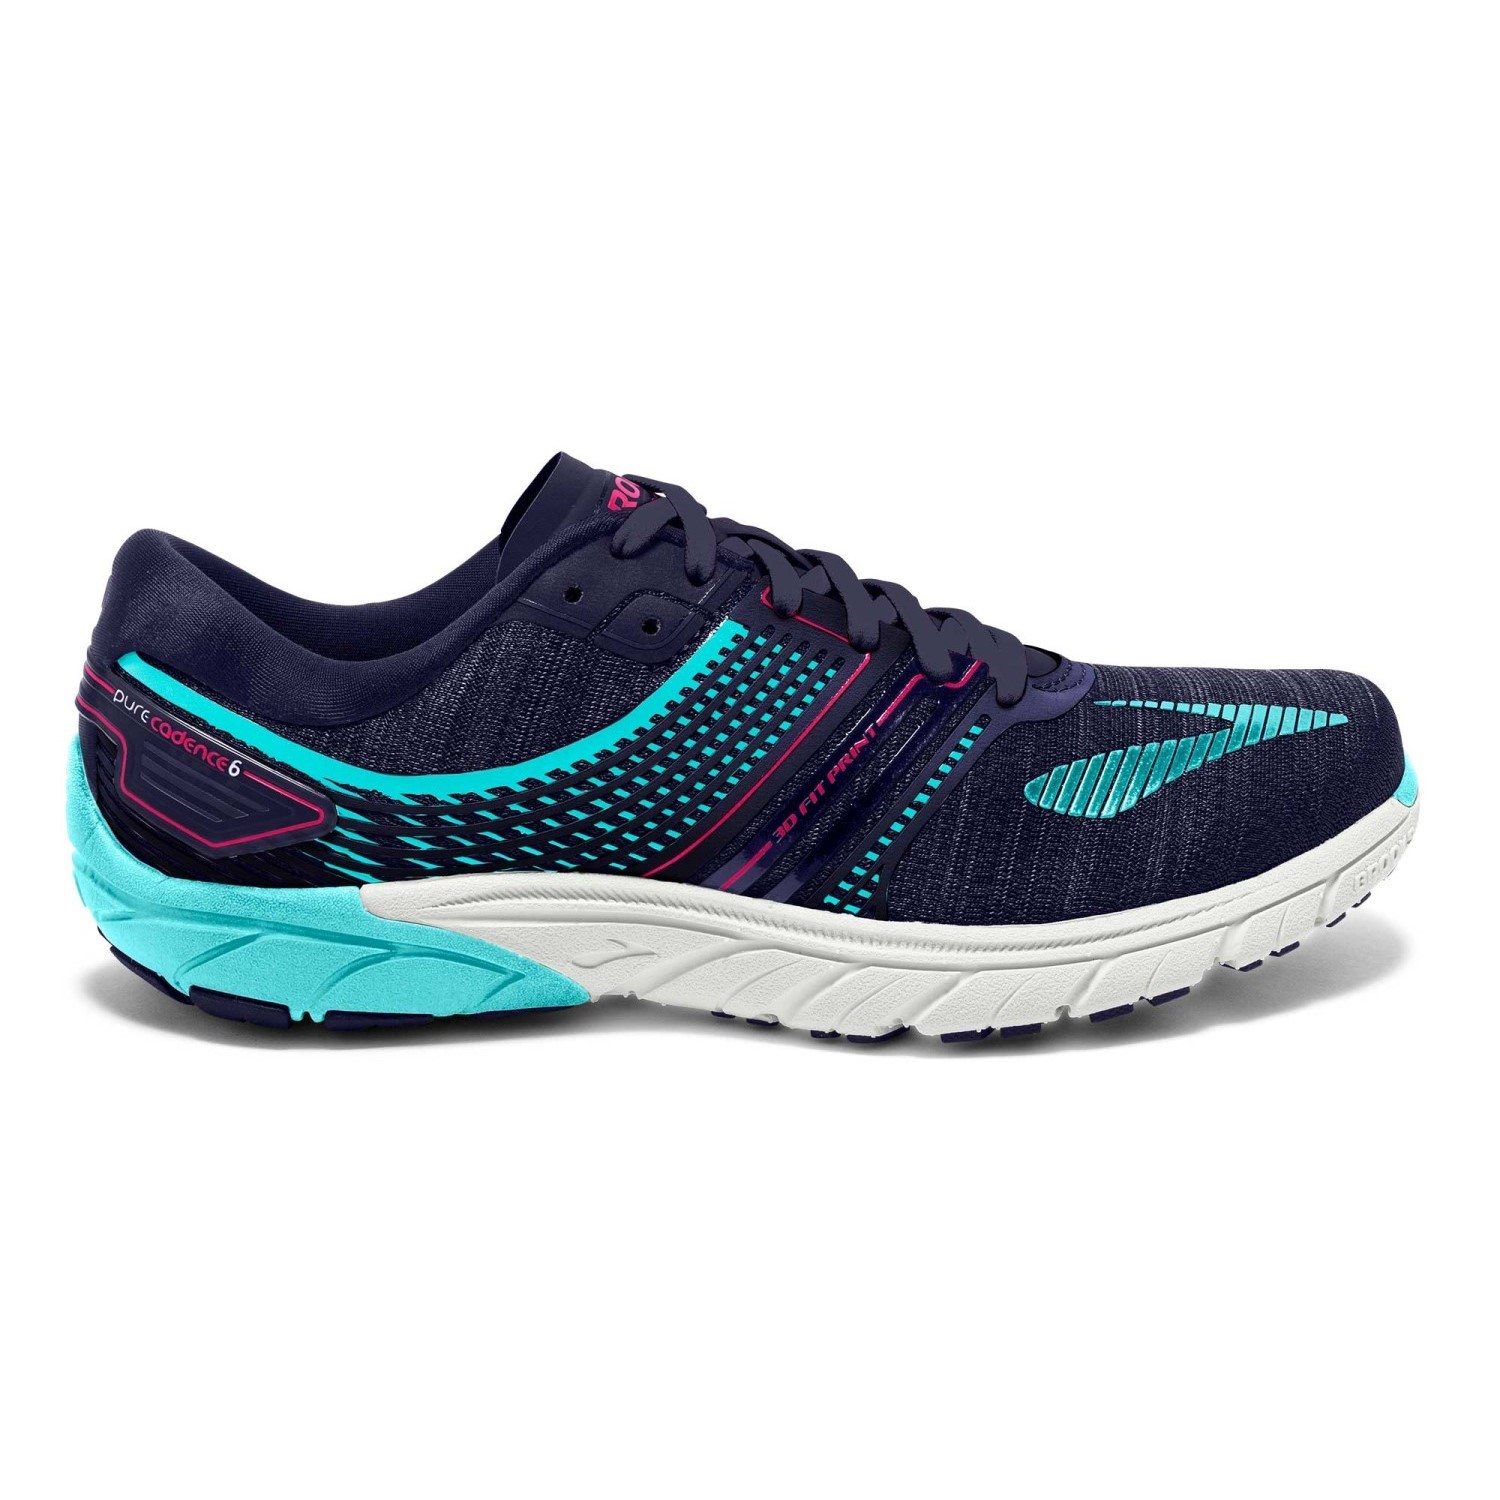 ad8572686cd Brooks PureCadence 6 - Womens Running Shoes - Evening Blue Pink  Peacock Island Paradise